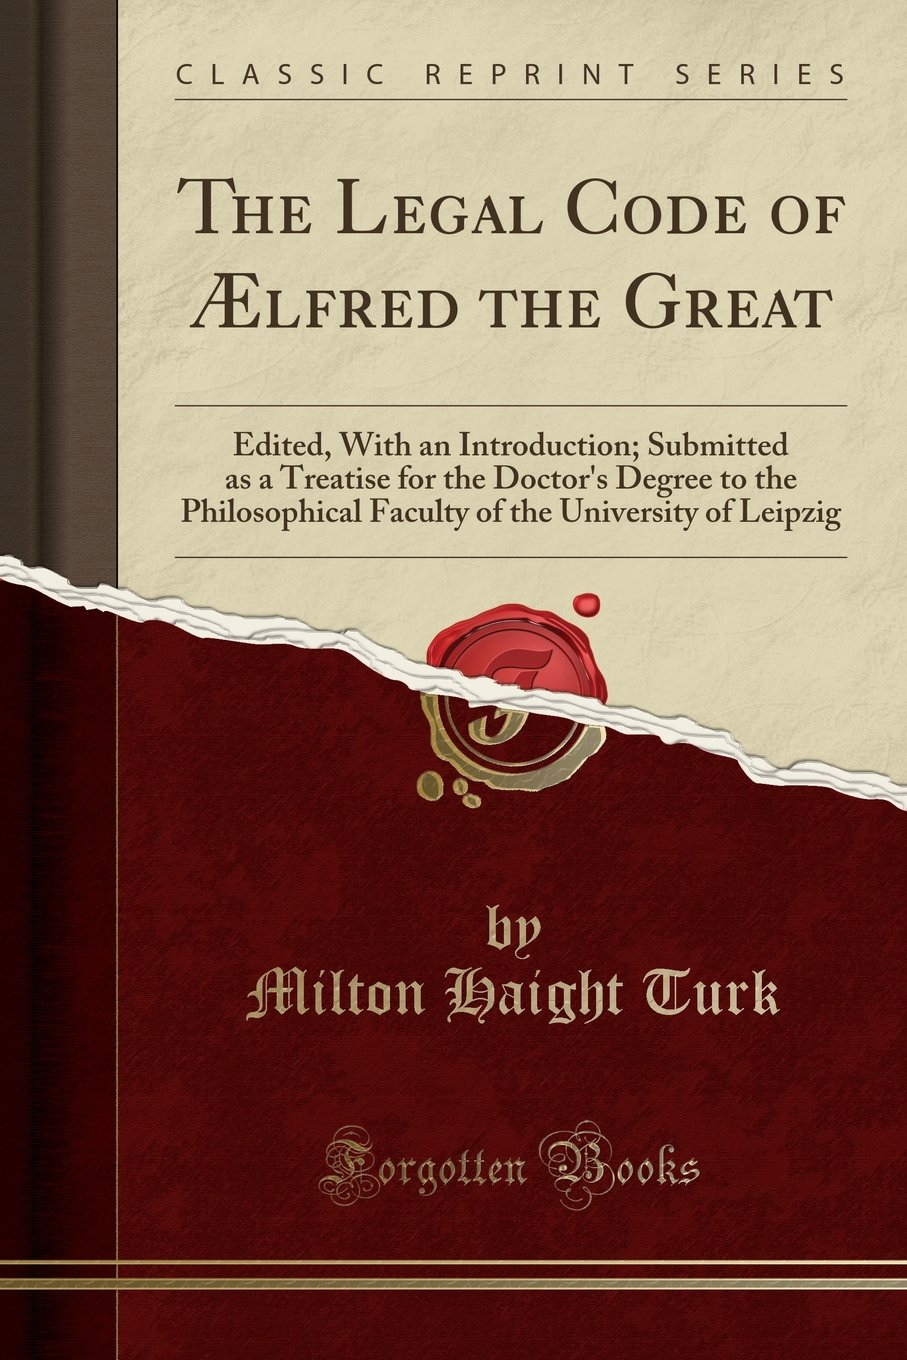 Download The Legal Code of Ælfred the Great: Edited, With an Introduction; Submitted as a Treatise for the Doctor's Degree to the Philosophical Faculty of the University of Leipzig (Classic Reprint) ebook